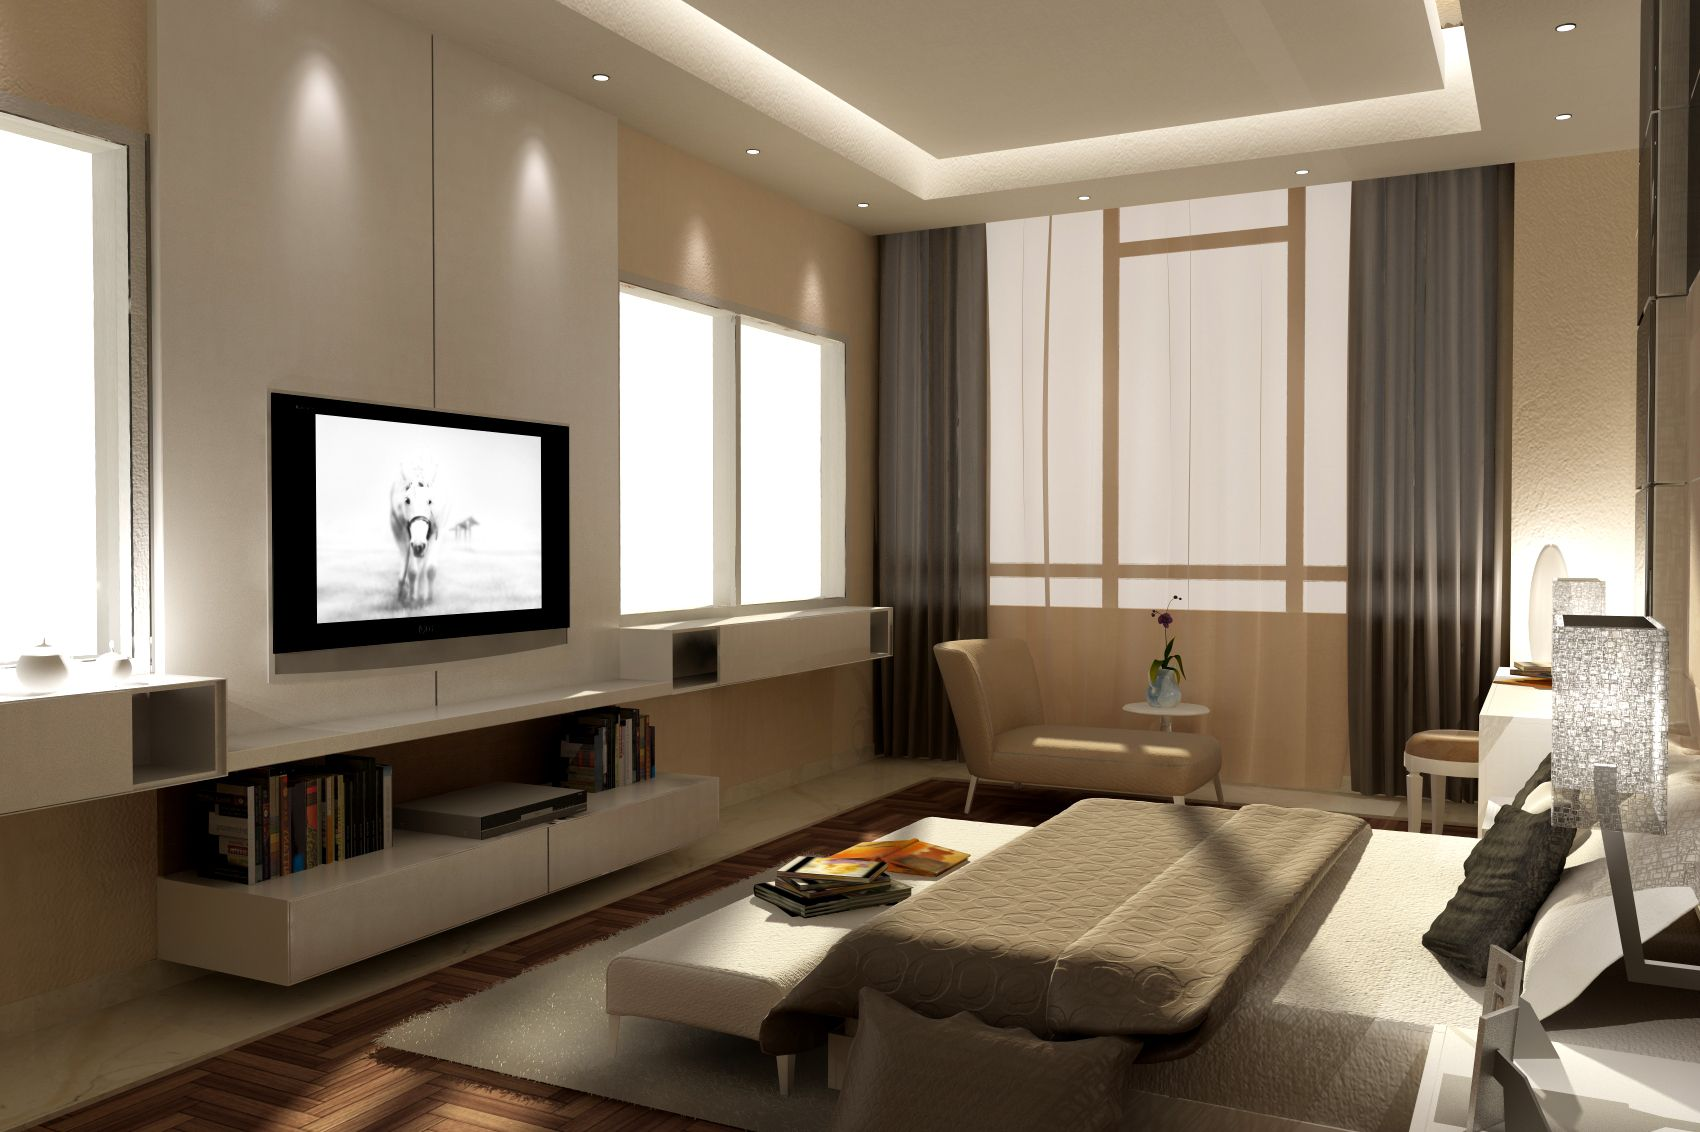 Bedroom modern bedroom interior design 3d max 3d for Bedroom designs interior